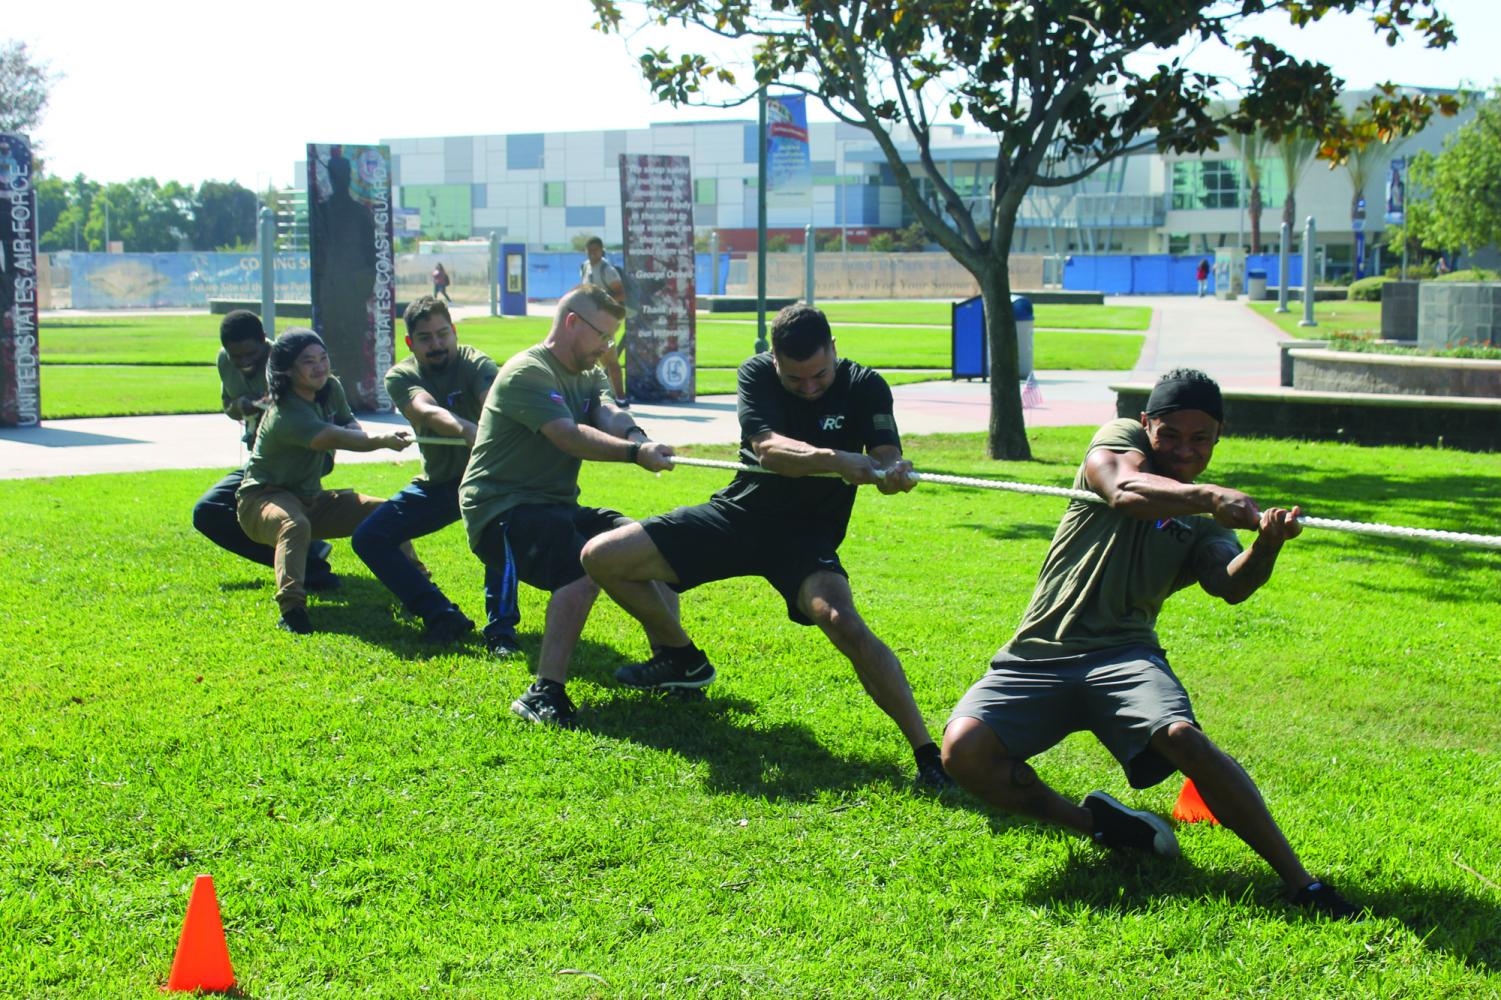 Financial aid staff, the Commerce Music Club, and Cerritos College veterans participated in a few rounds of tug-of-war competitions, with financial aid staff  ultimately taking first place. This was the second event of Veterans Week, taking place on Nov. 6.